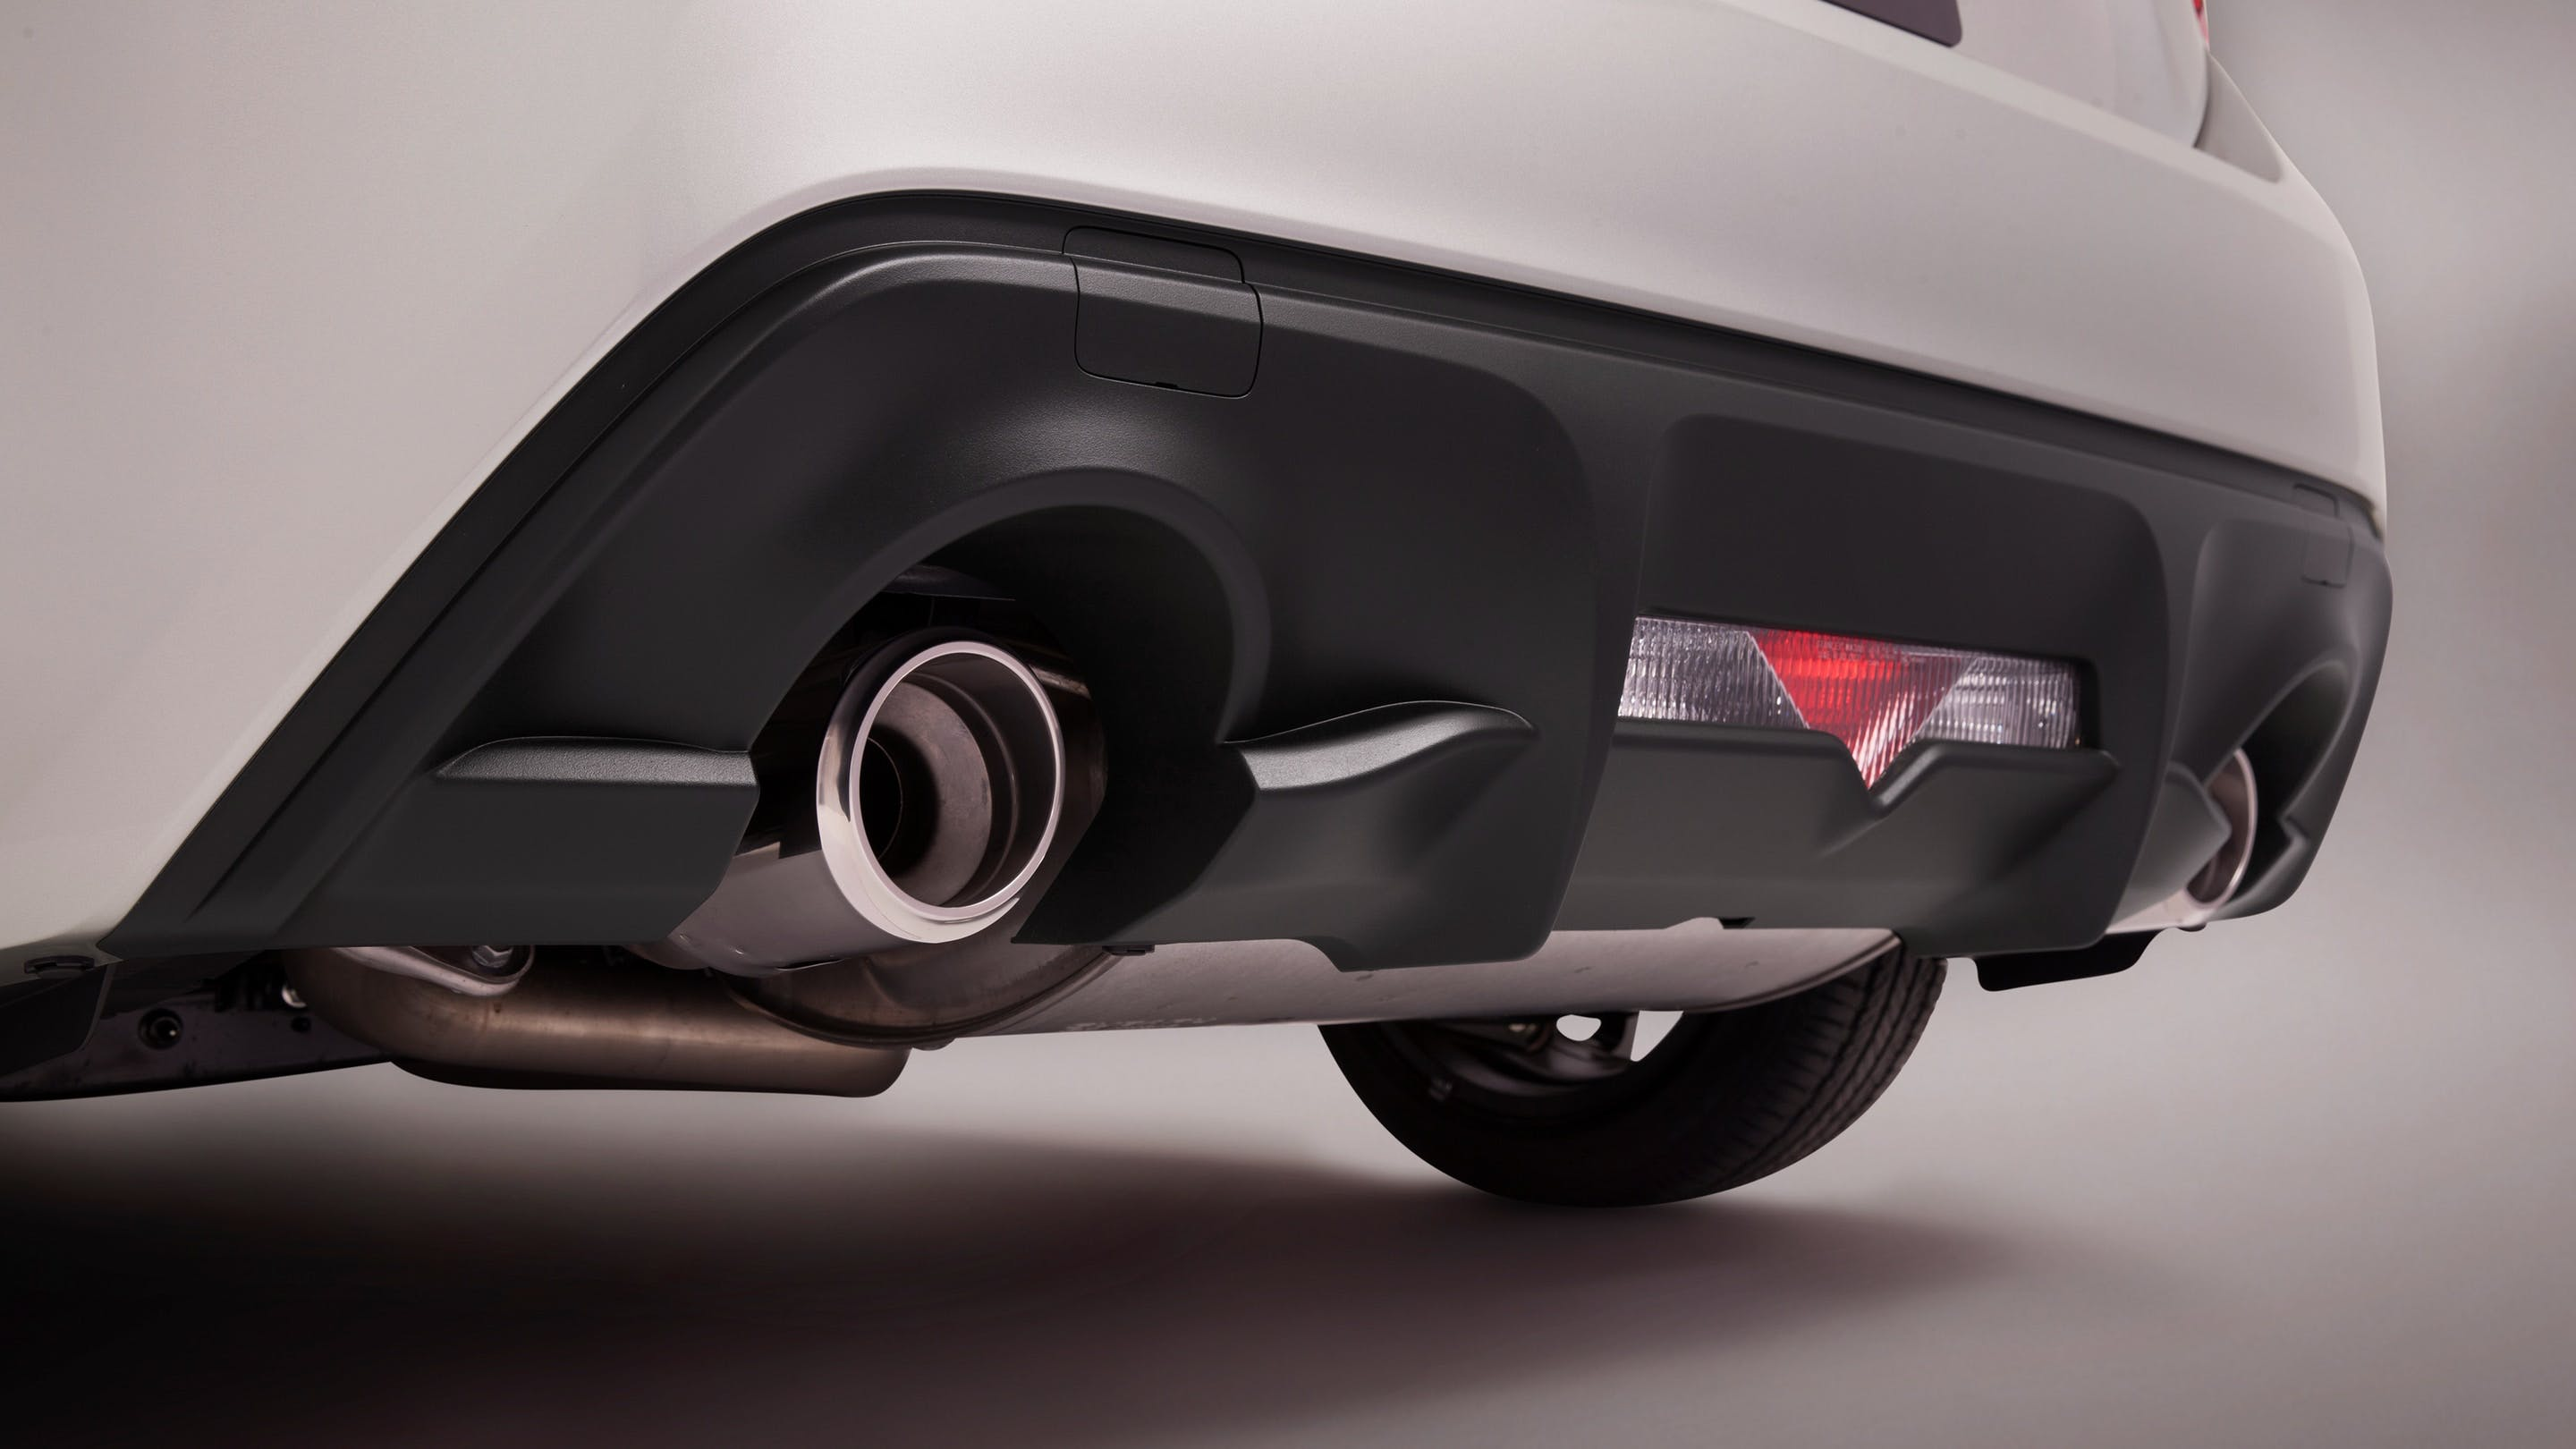 CHROME-TIPPED DUAL EXHAUST